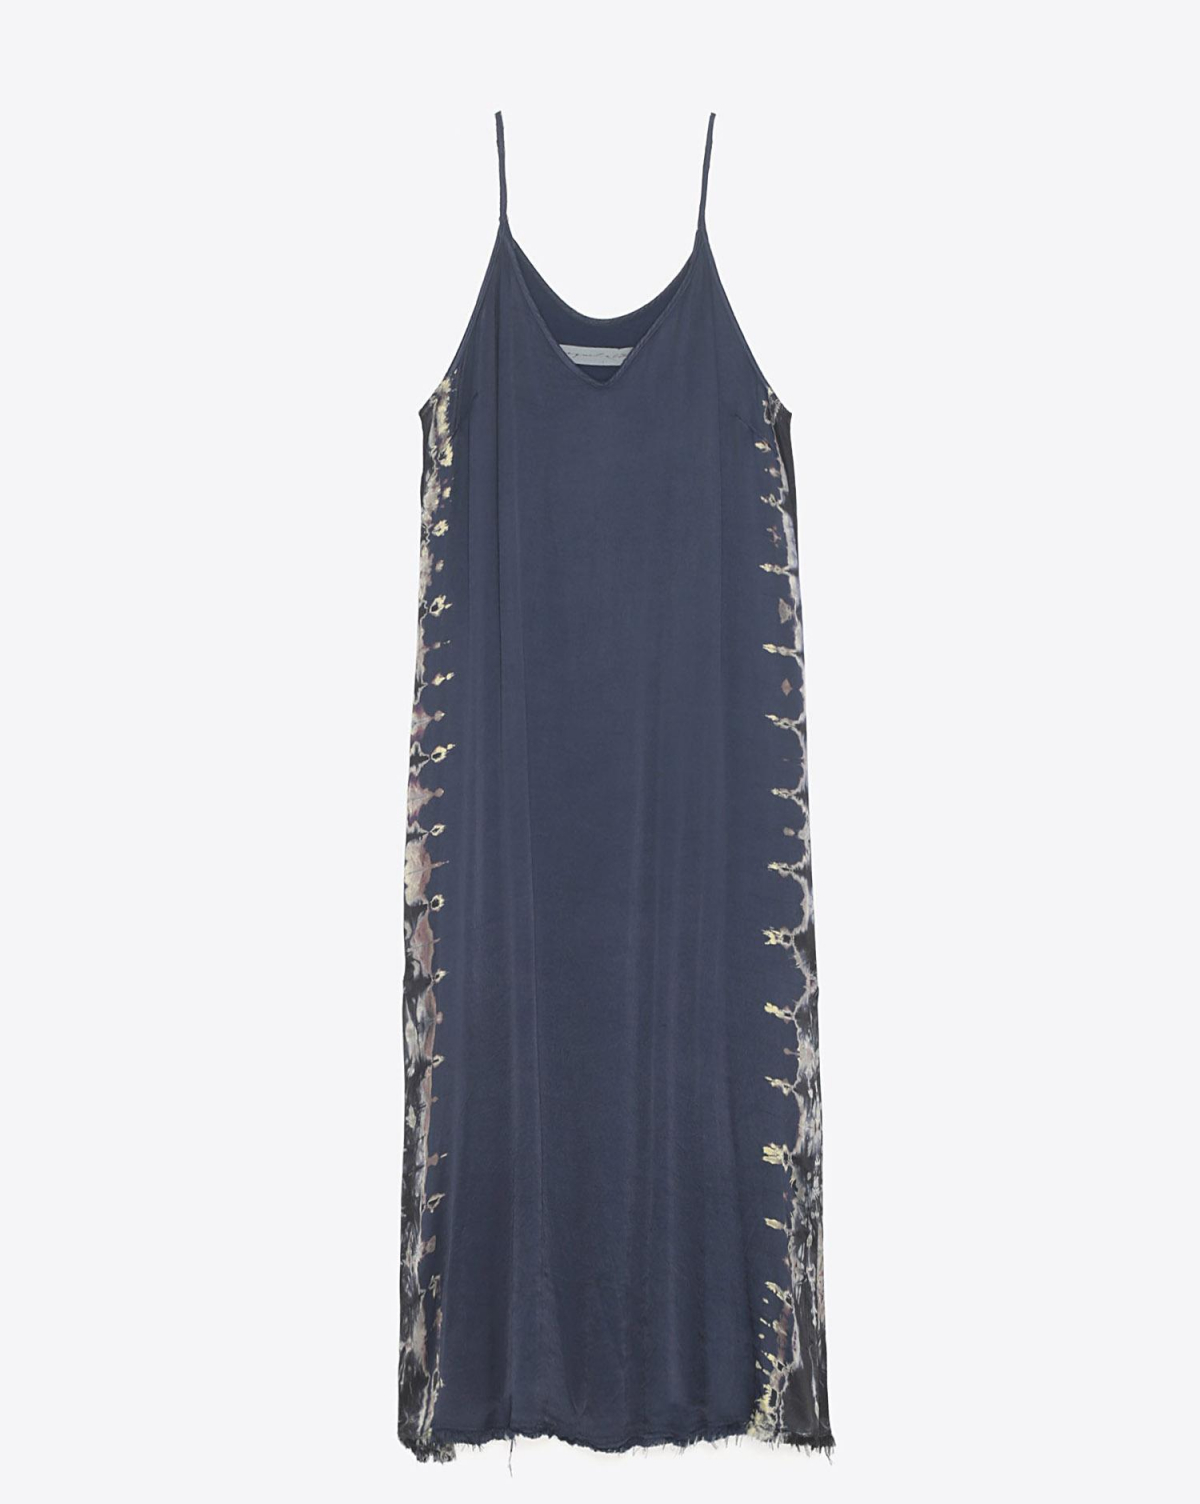 Raquel Allegra Pré-Collection Little Slip Dress - Indigo Tie Dye